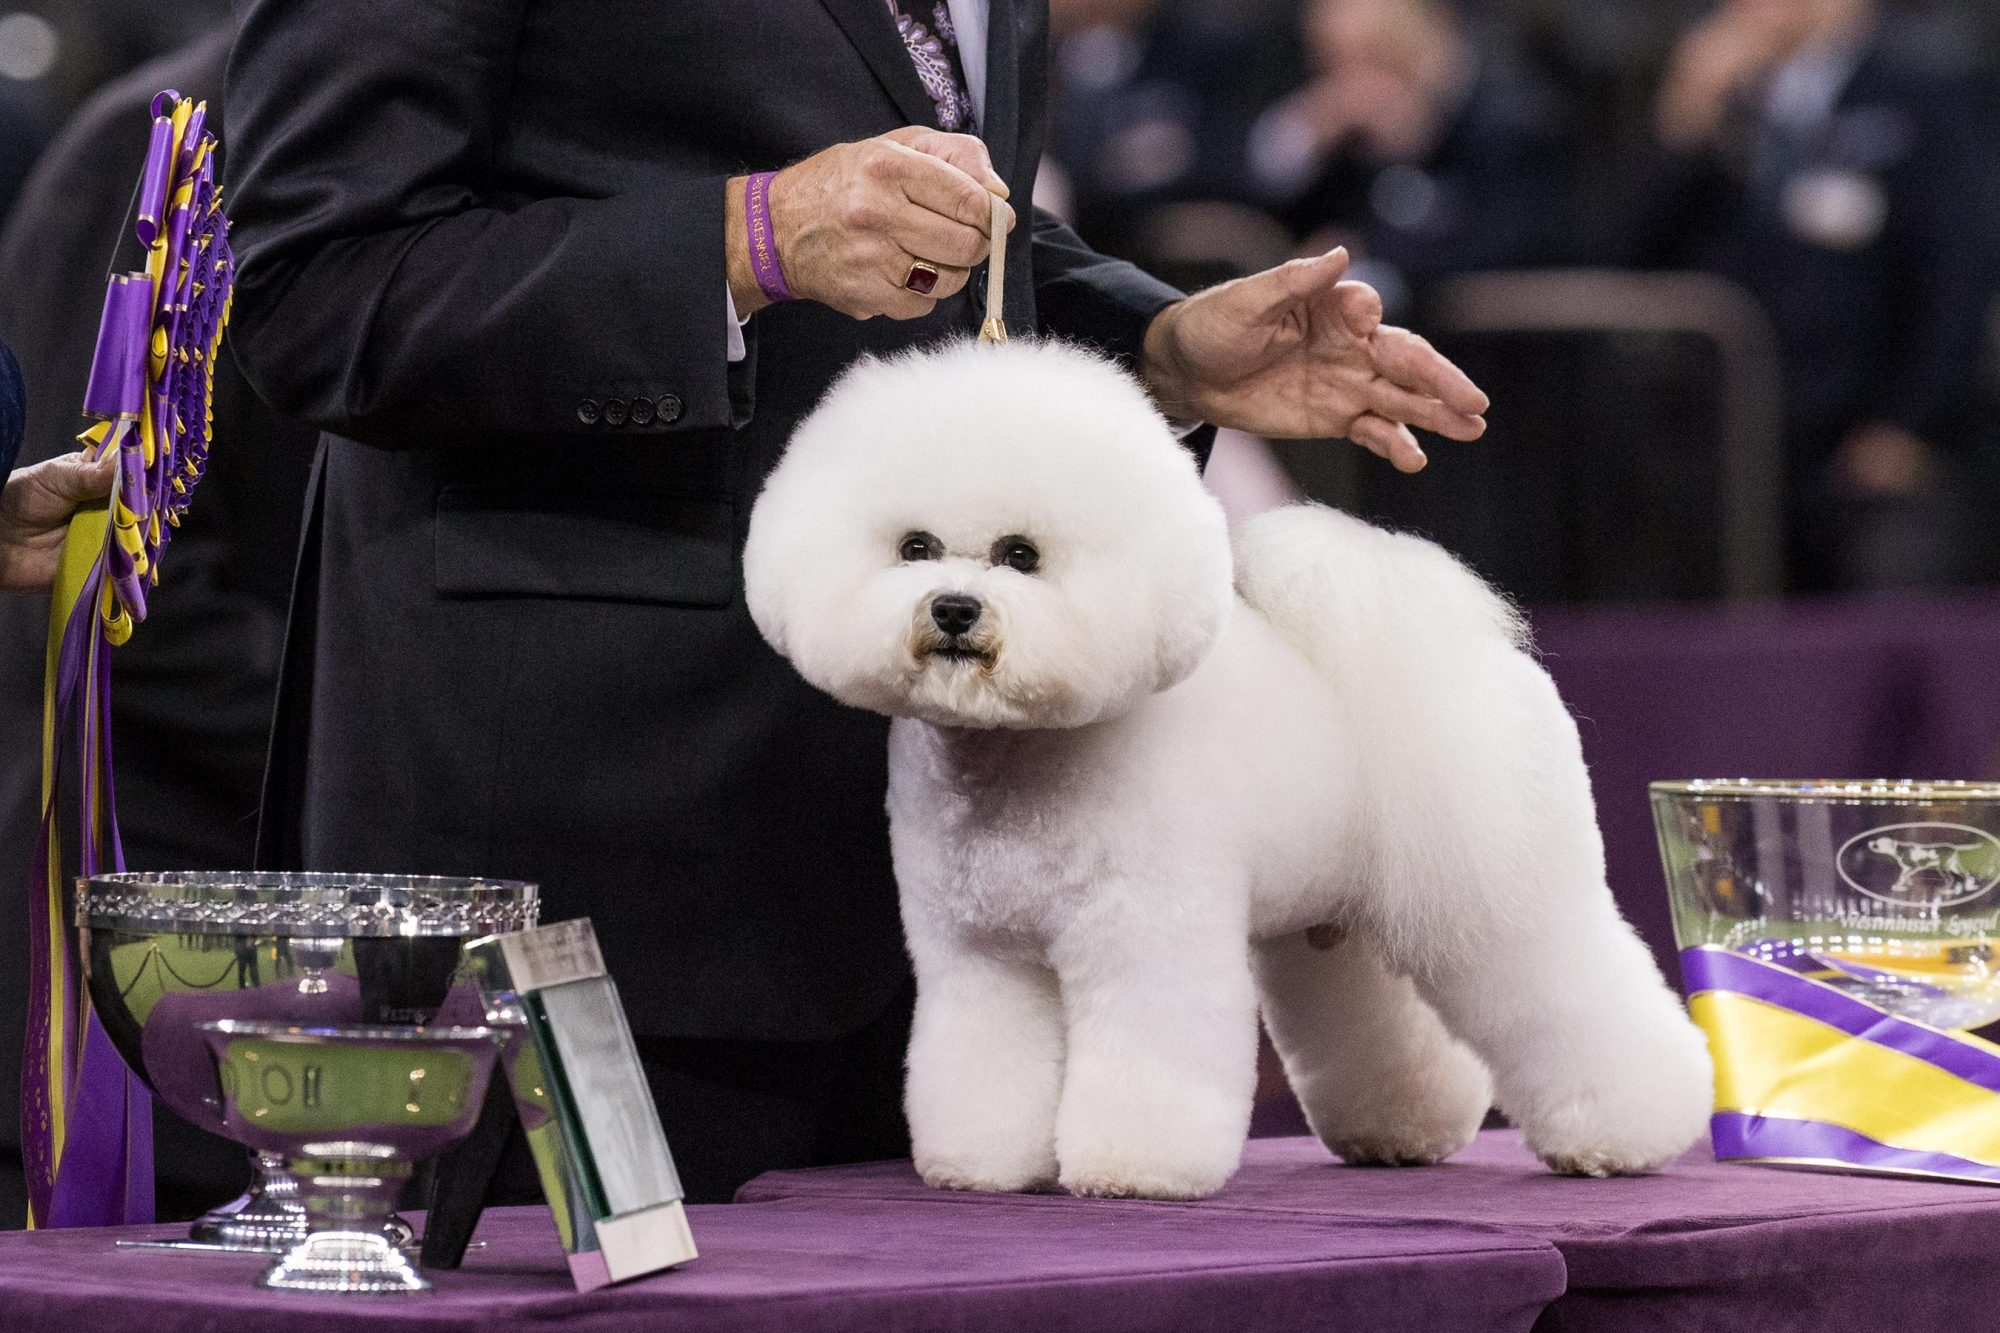 Flynn, a Bichon Frise, was the overall winner / Best in Show